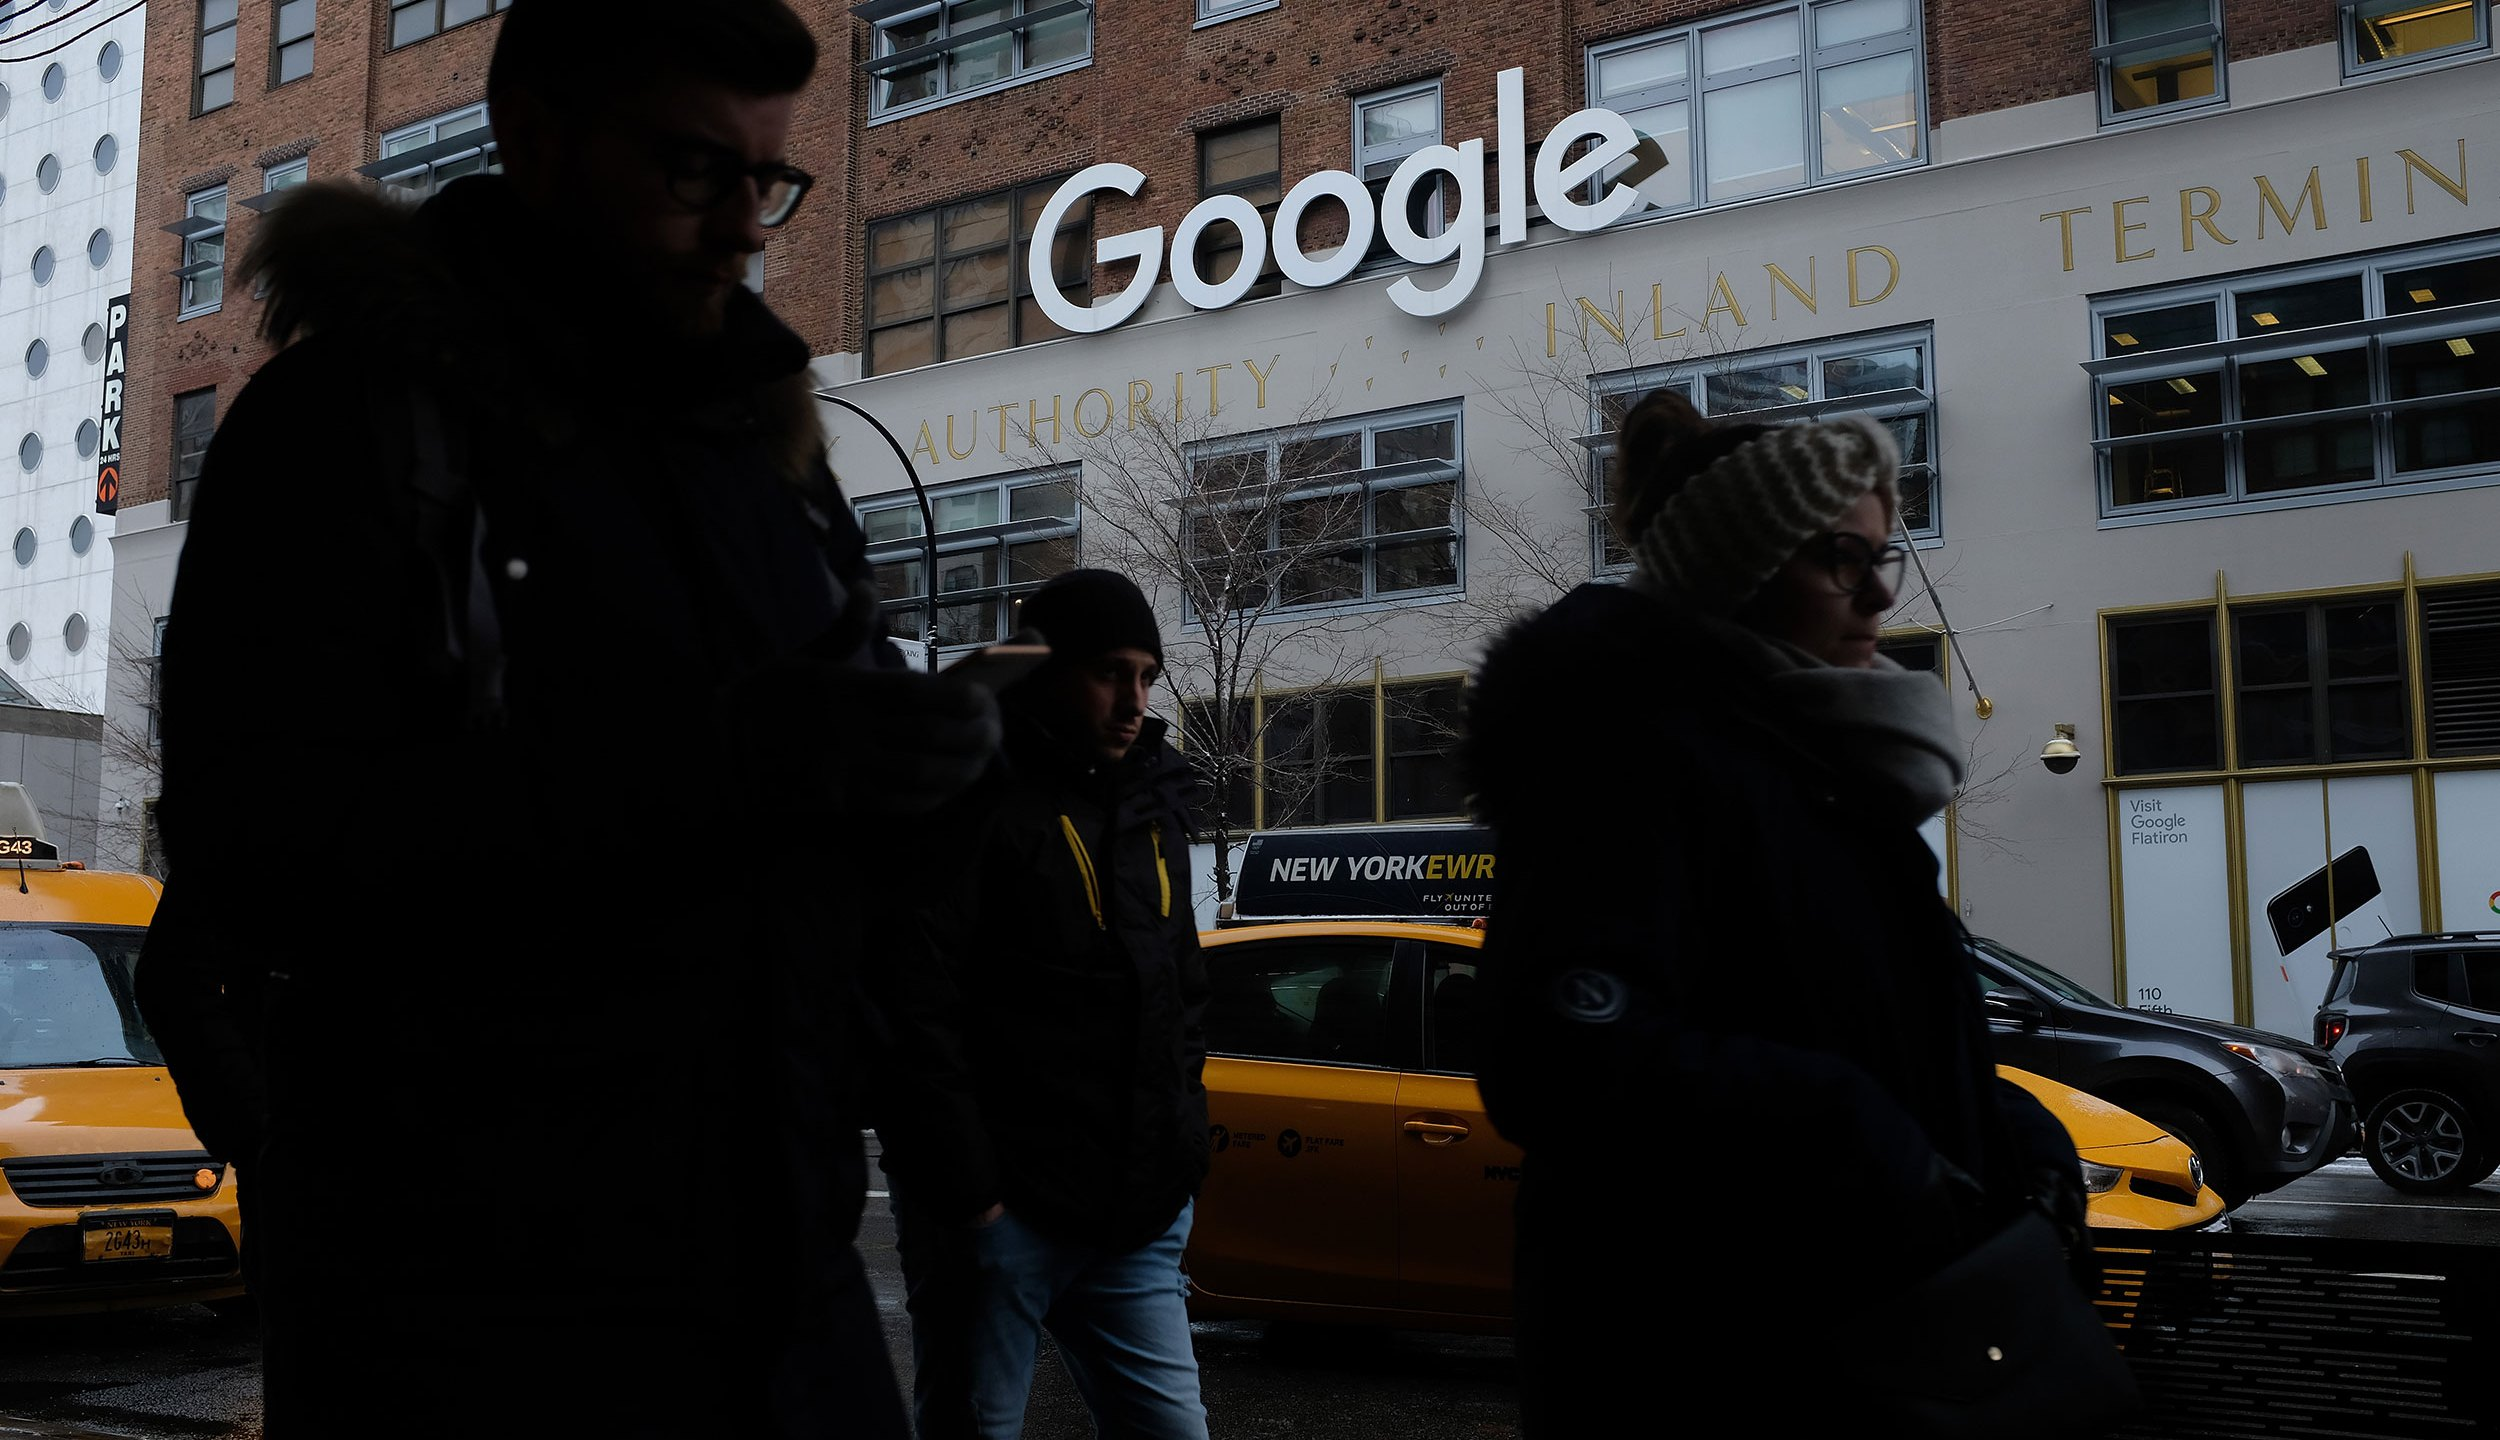 People walk past a Google office building on 9th Avenue in Chelsea district on Dec. 30, 2017, in New York City. ( Sean Gallup/Getty Images)